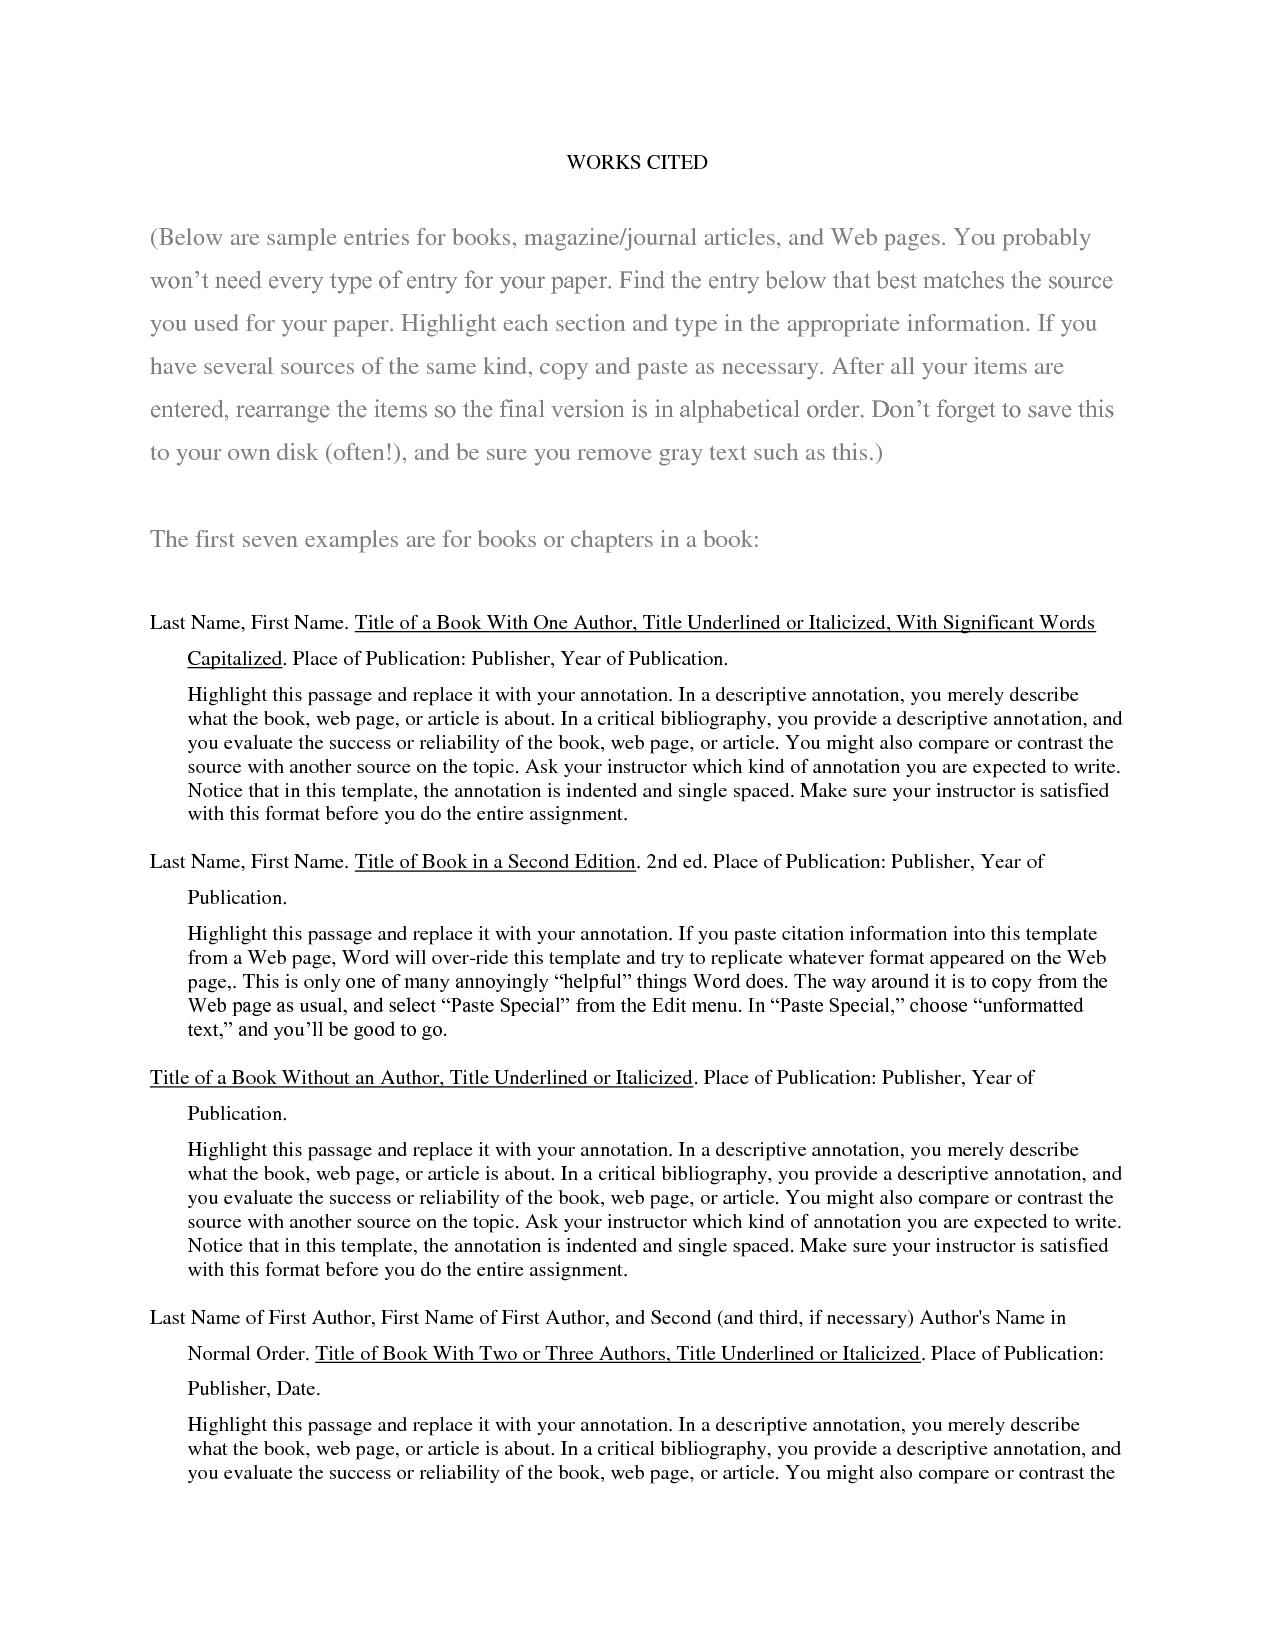 Annotated Bibliography Template Apa Format